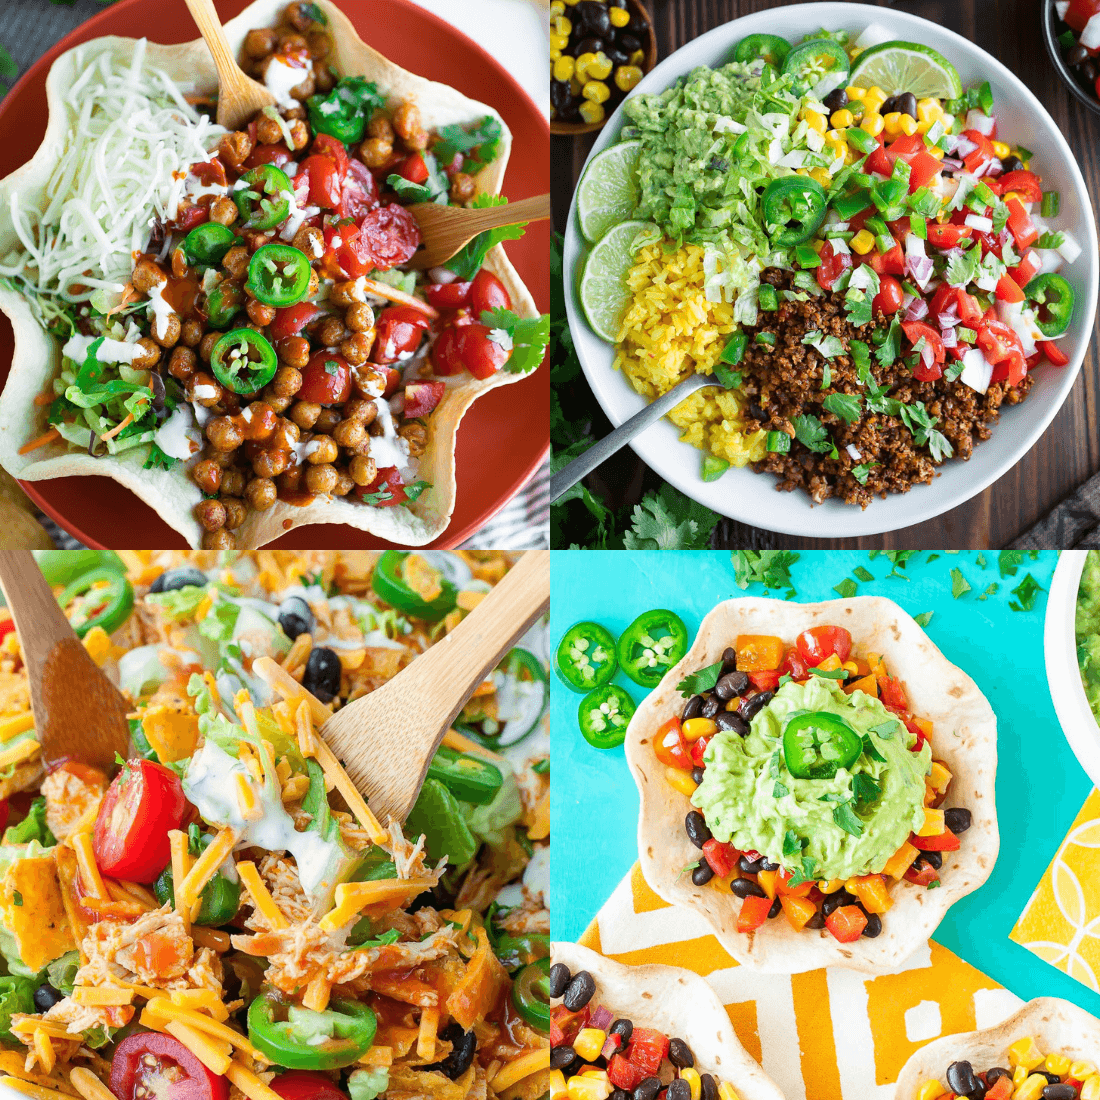 Taco Salad Ingredient Options